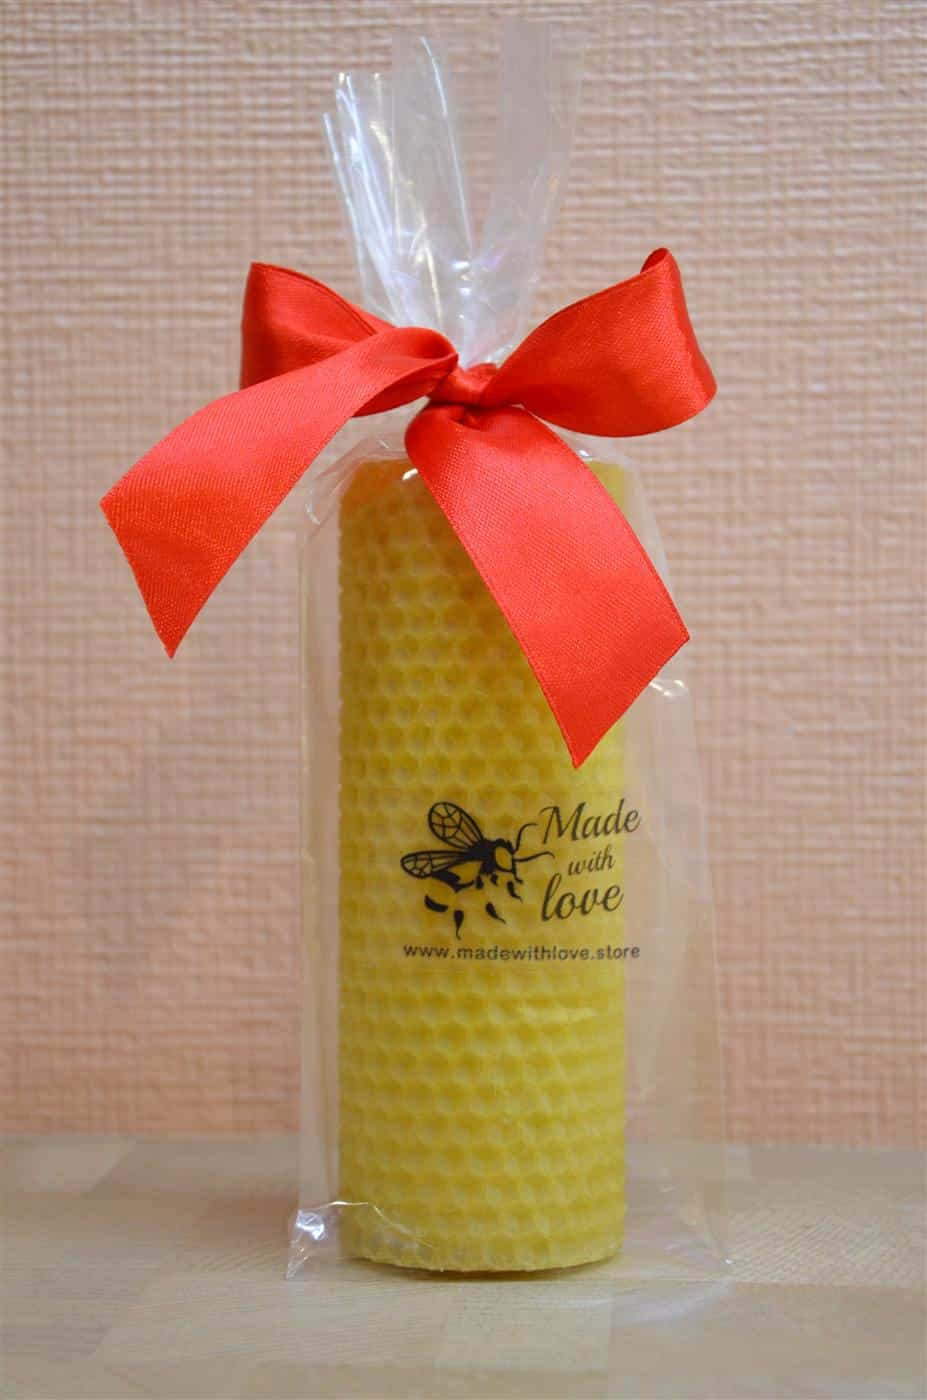 Wedding Gifts For Guests Ebay : ... Gifts For Guests Wedding Beeswax Candle Favour Guest Gifts eBay